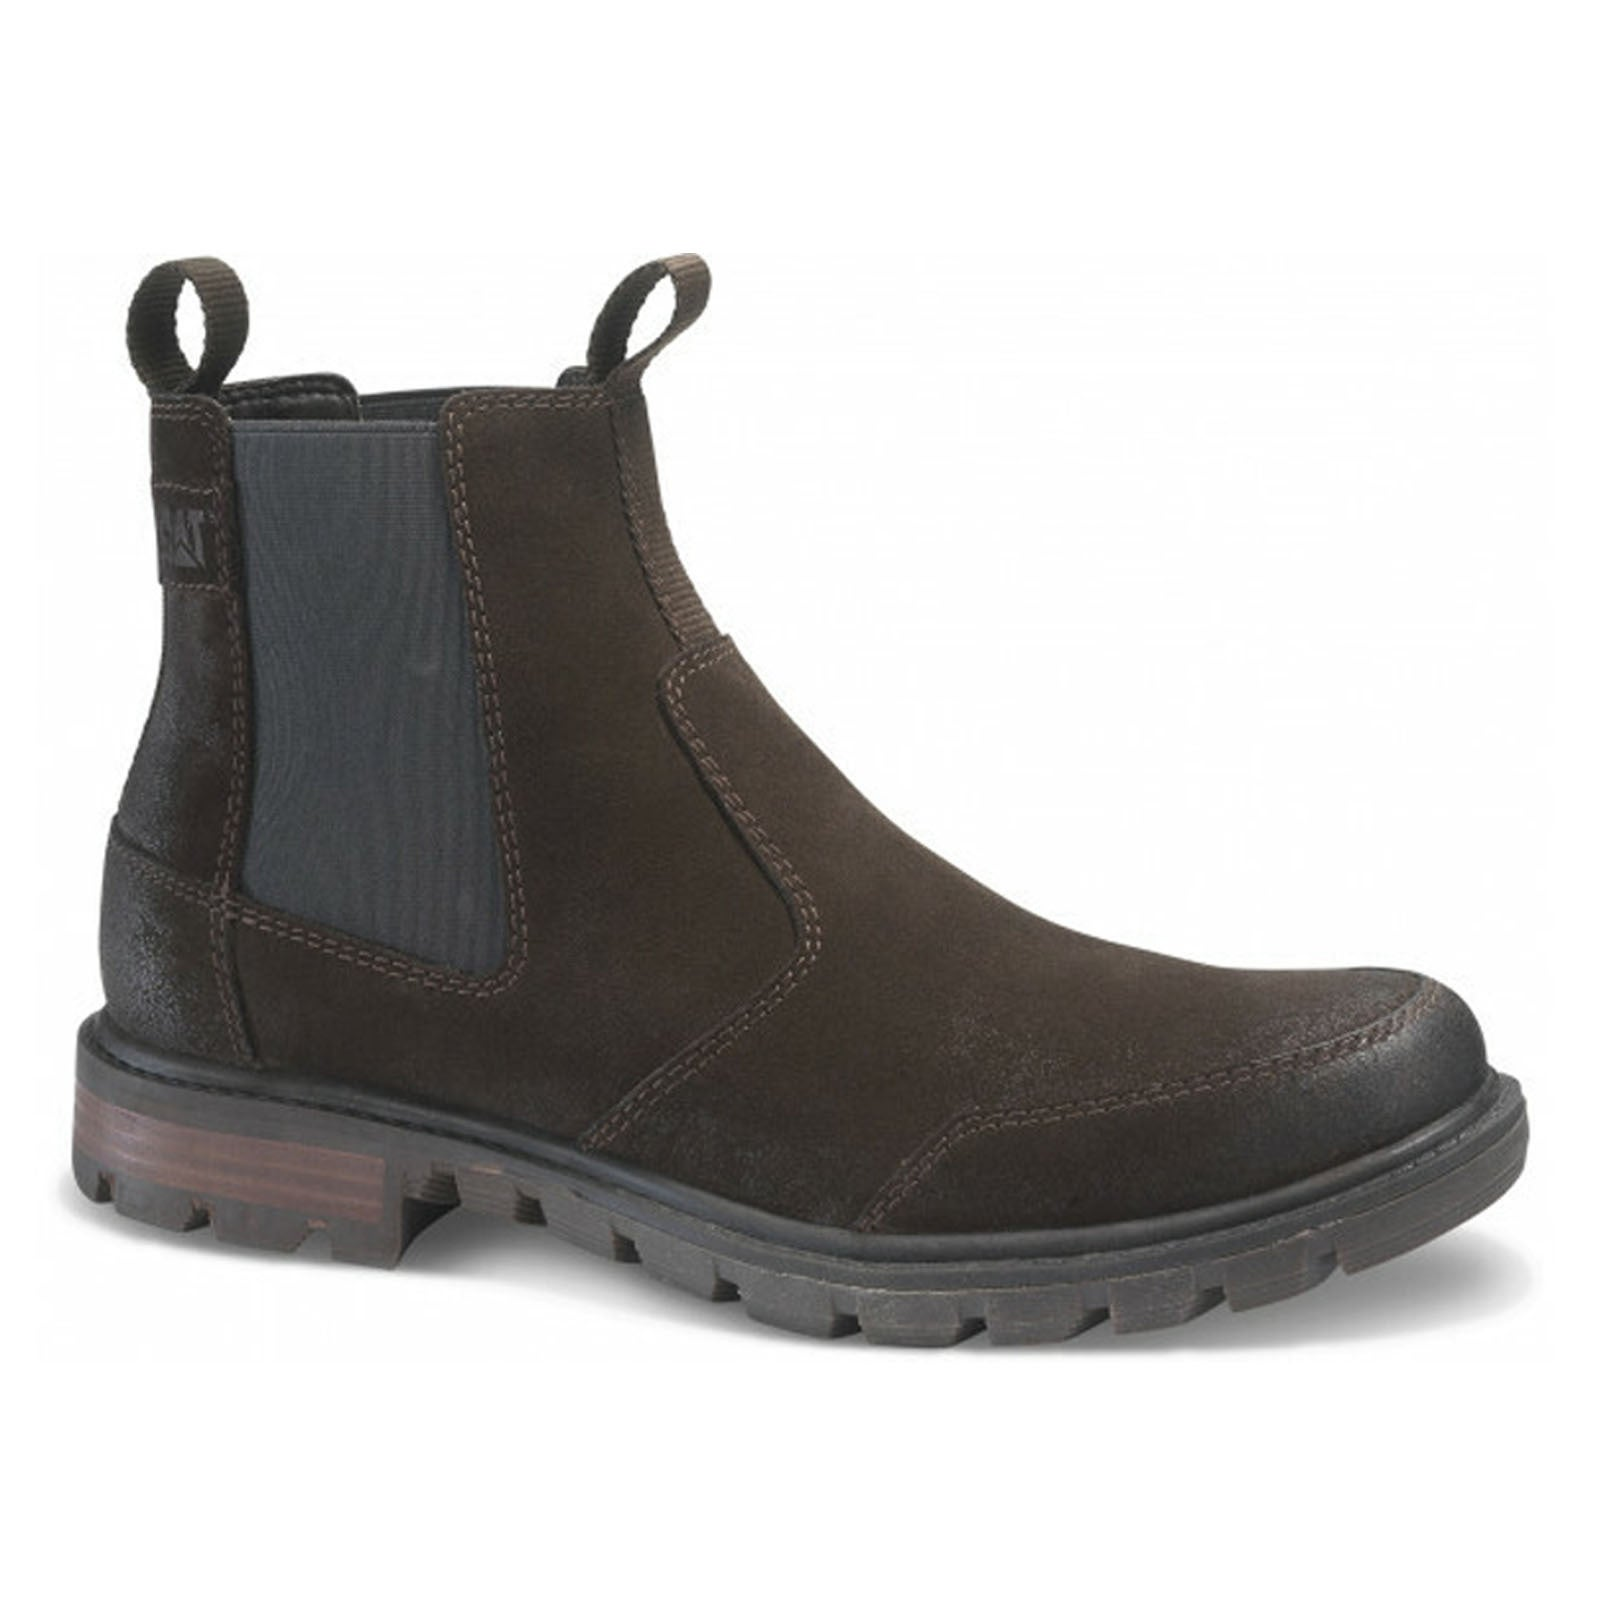 Caterpillar Men's Chelsea Leather Pull On Boots Shoes CAT Economist - Brown Tmoro